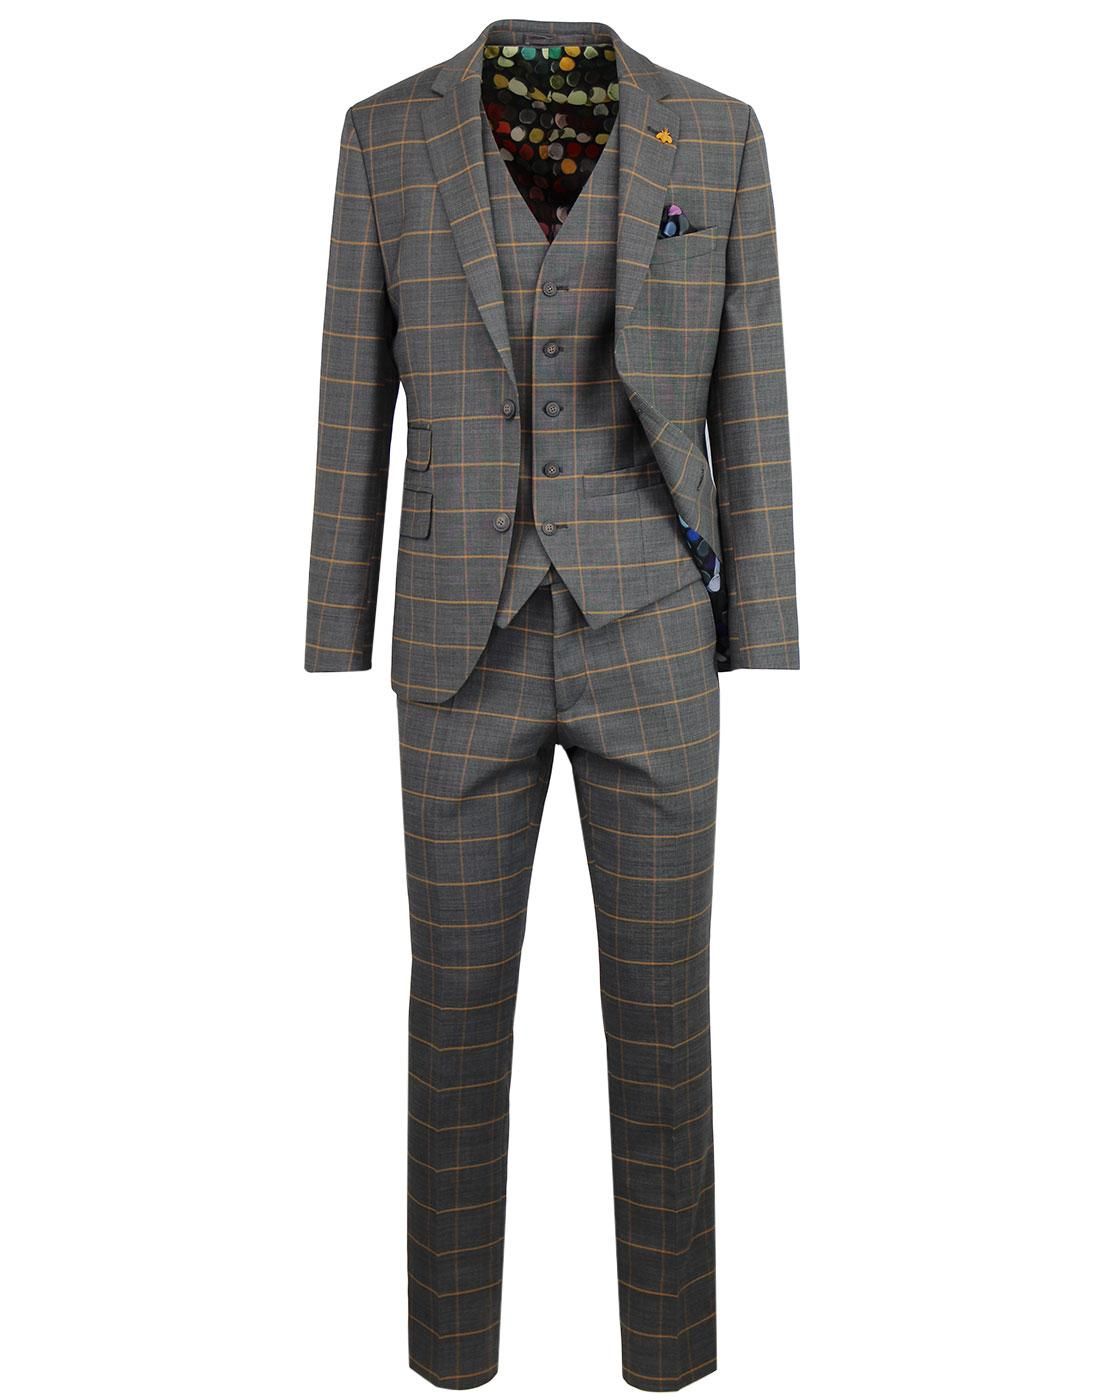 GIBSON LONDON Marriott Mod Windowpane Check Suit